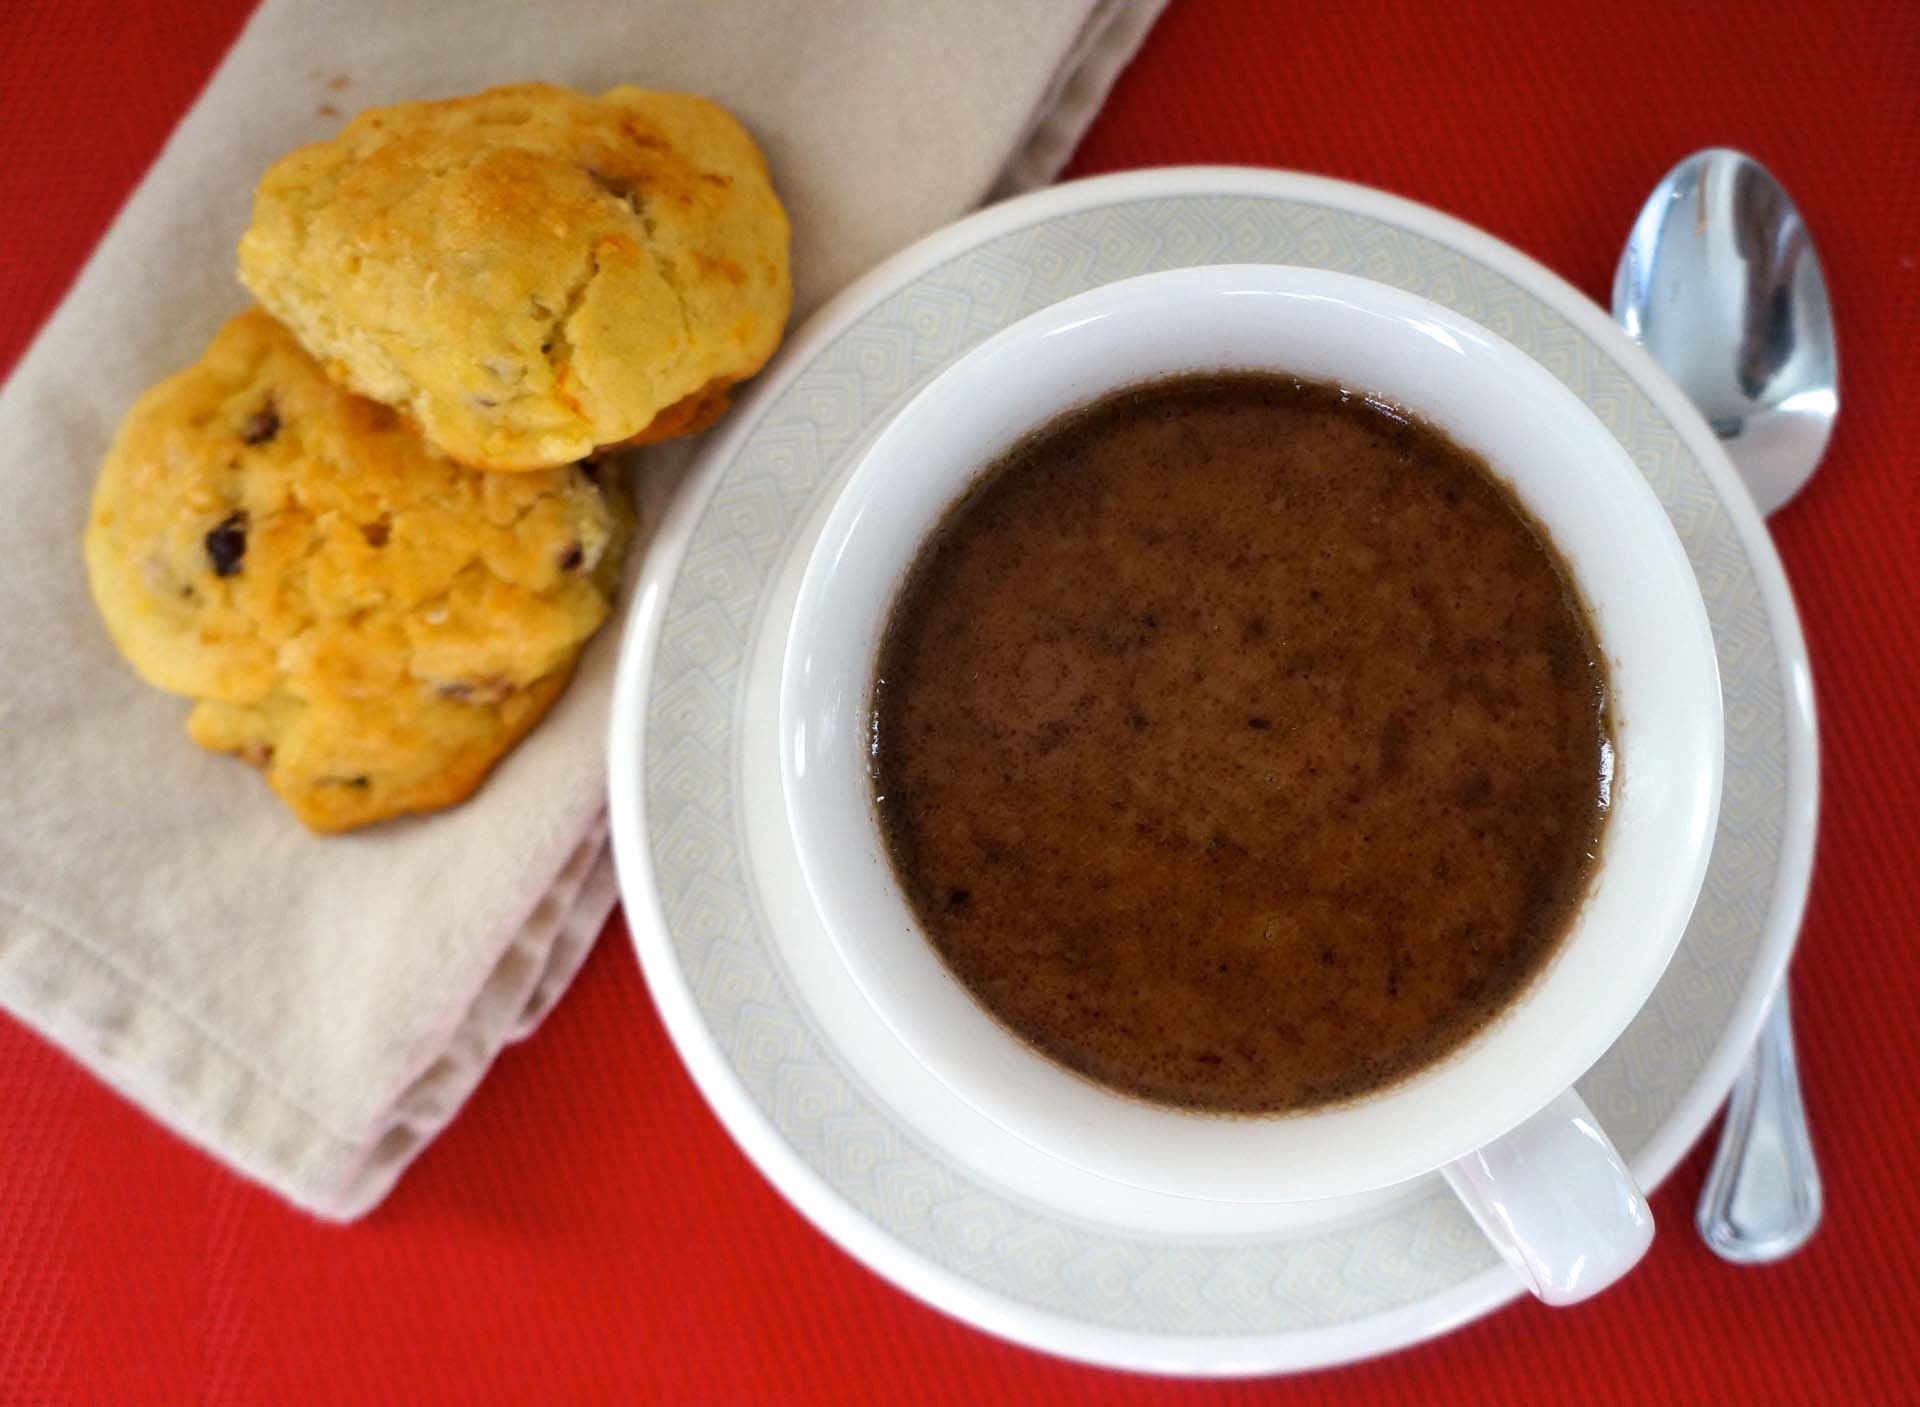 How to make Haitian Hot Chocolate